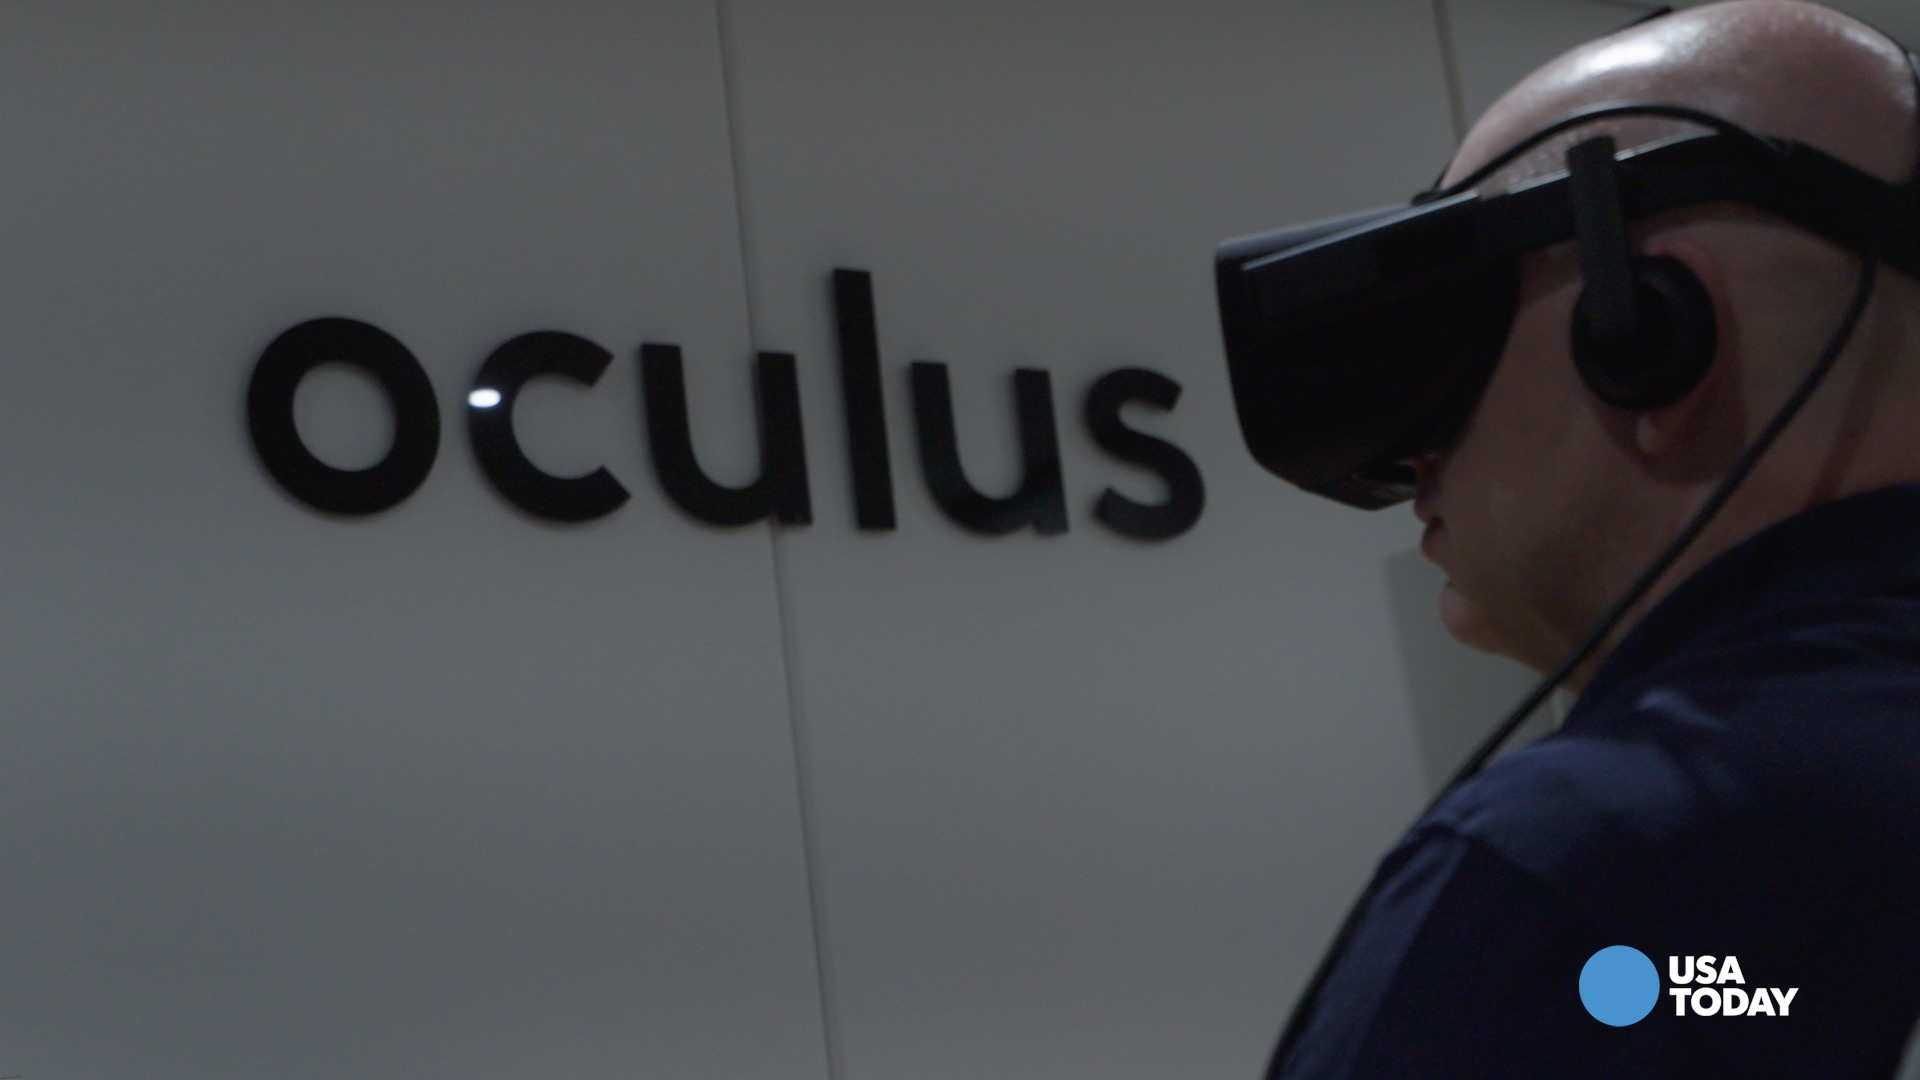 Days after unvieling the first consumer ready Oculus Rift, Oculus VR gives USA TODAY's Mike Snider a preview of what the device will offer for consumers at the 2015 E3 convention.